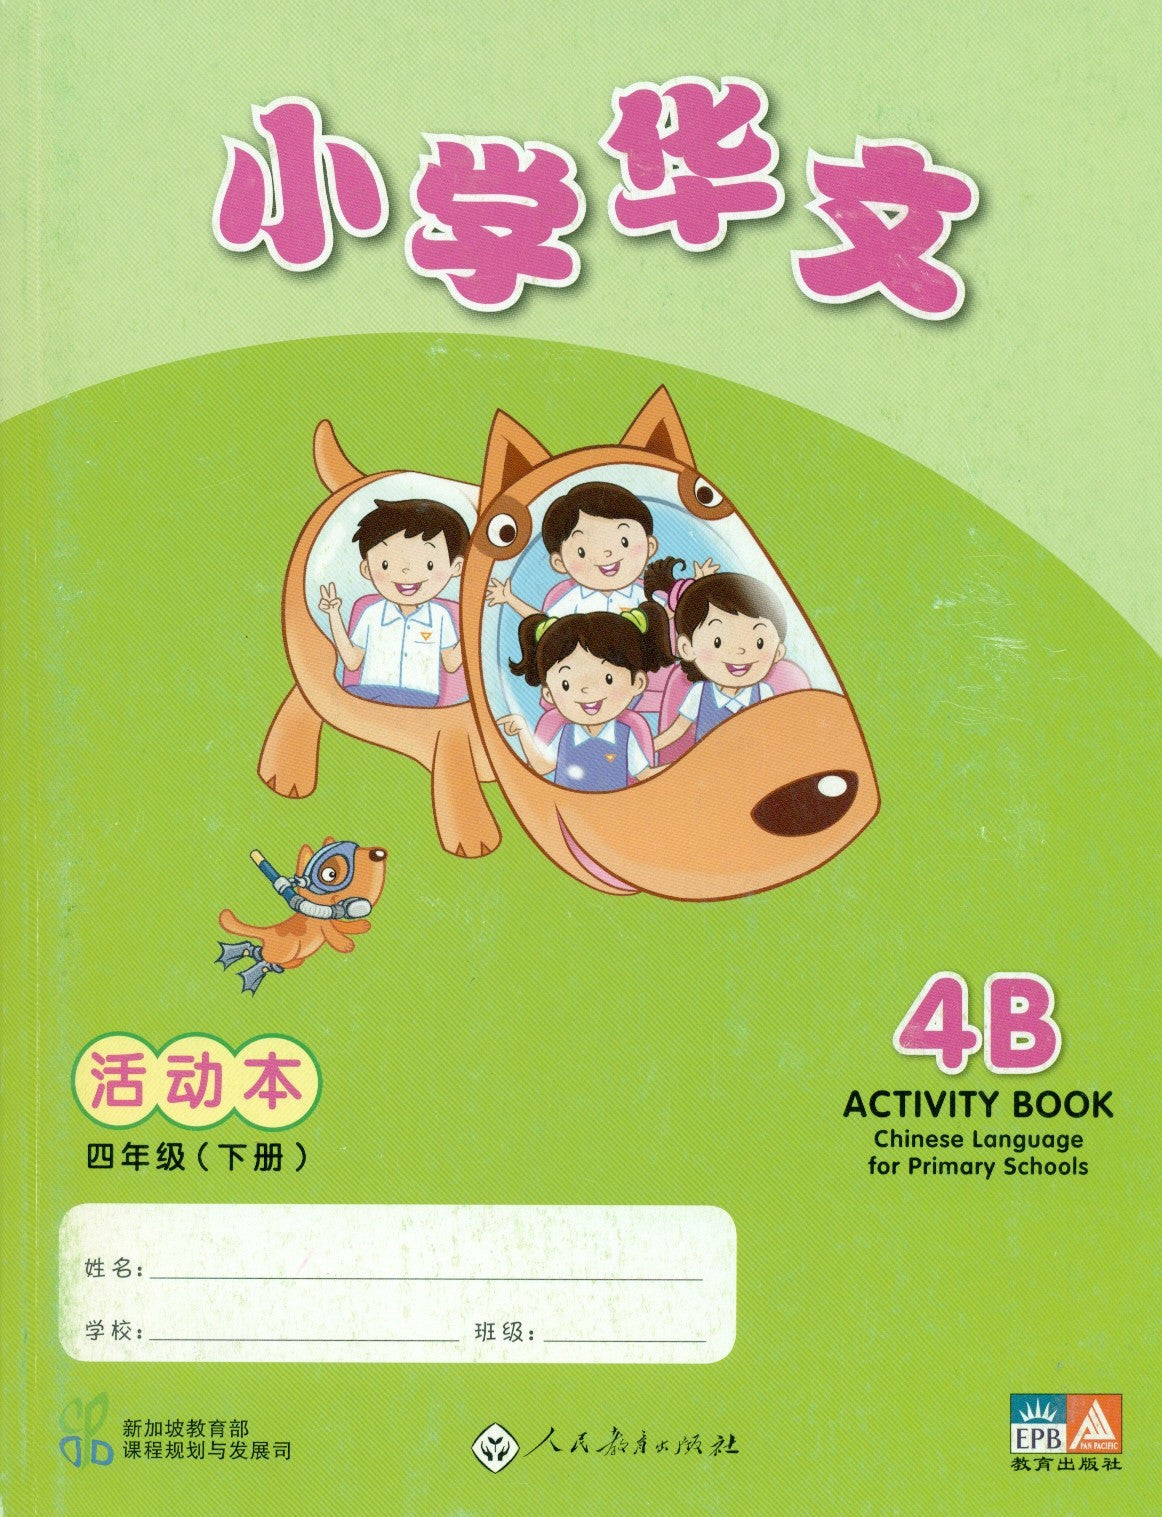 Chinese Language for Primary Schools: Activity Book 4B